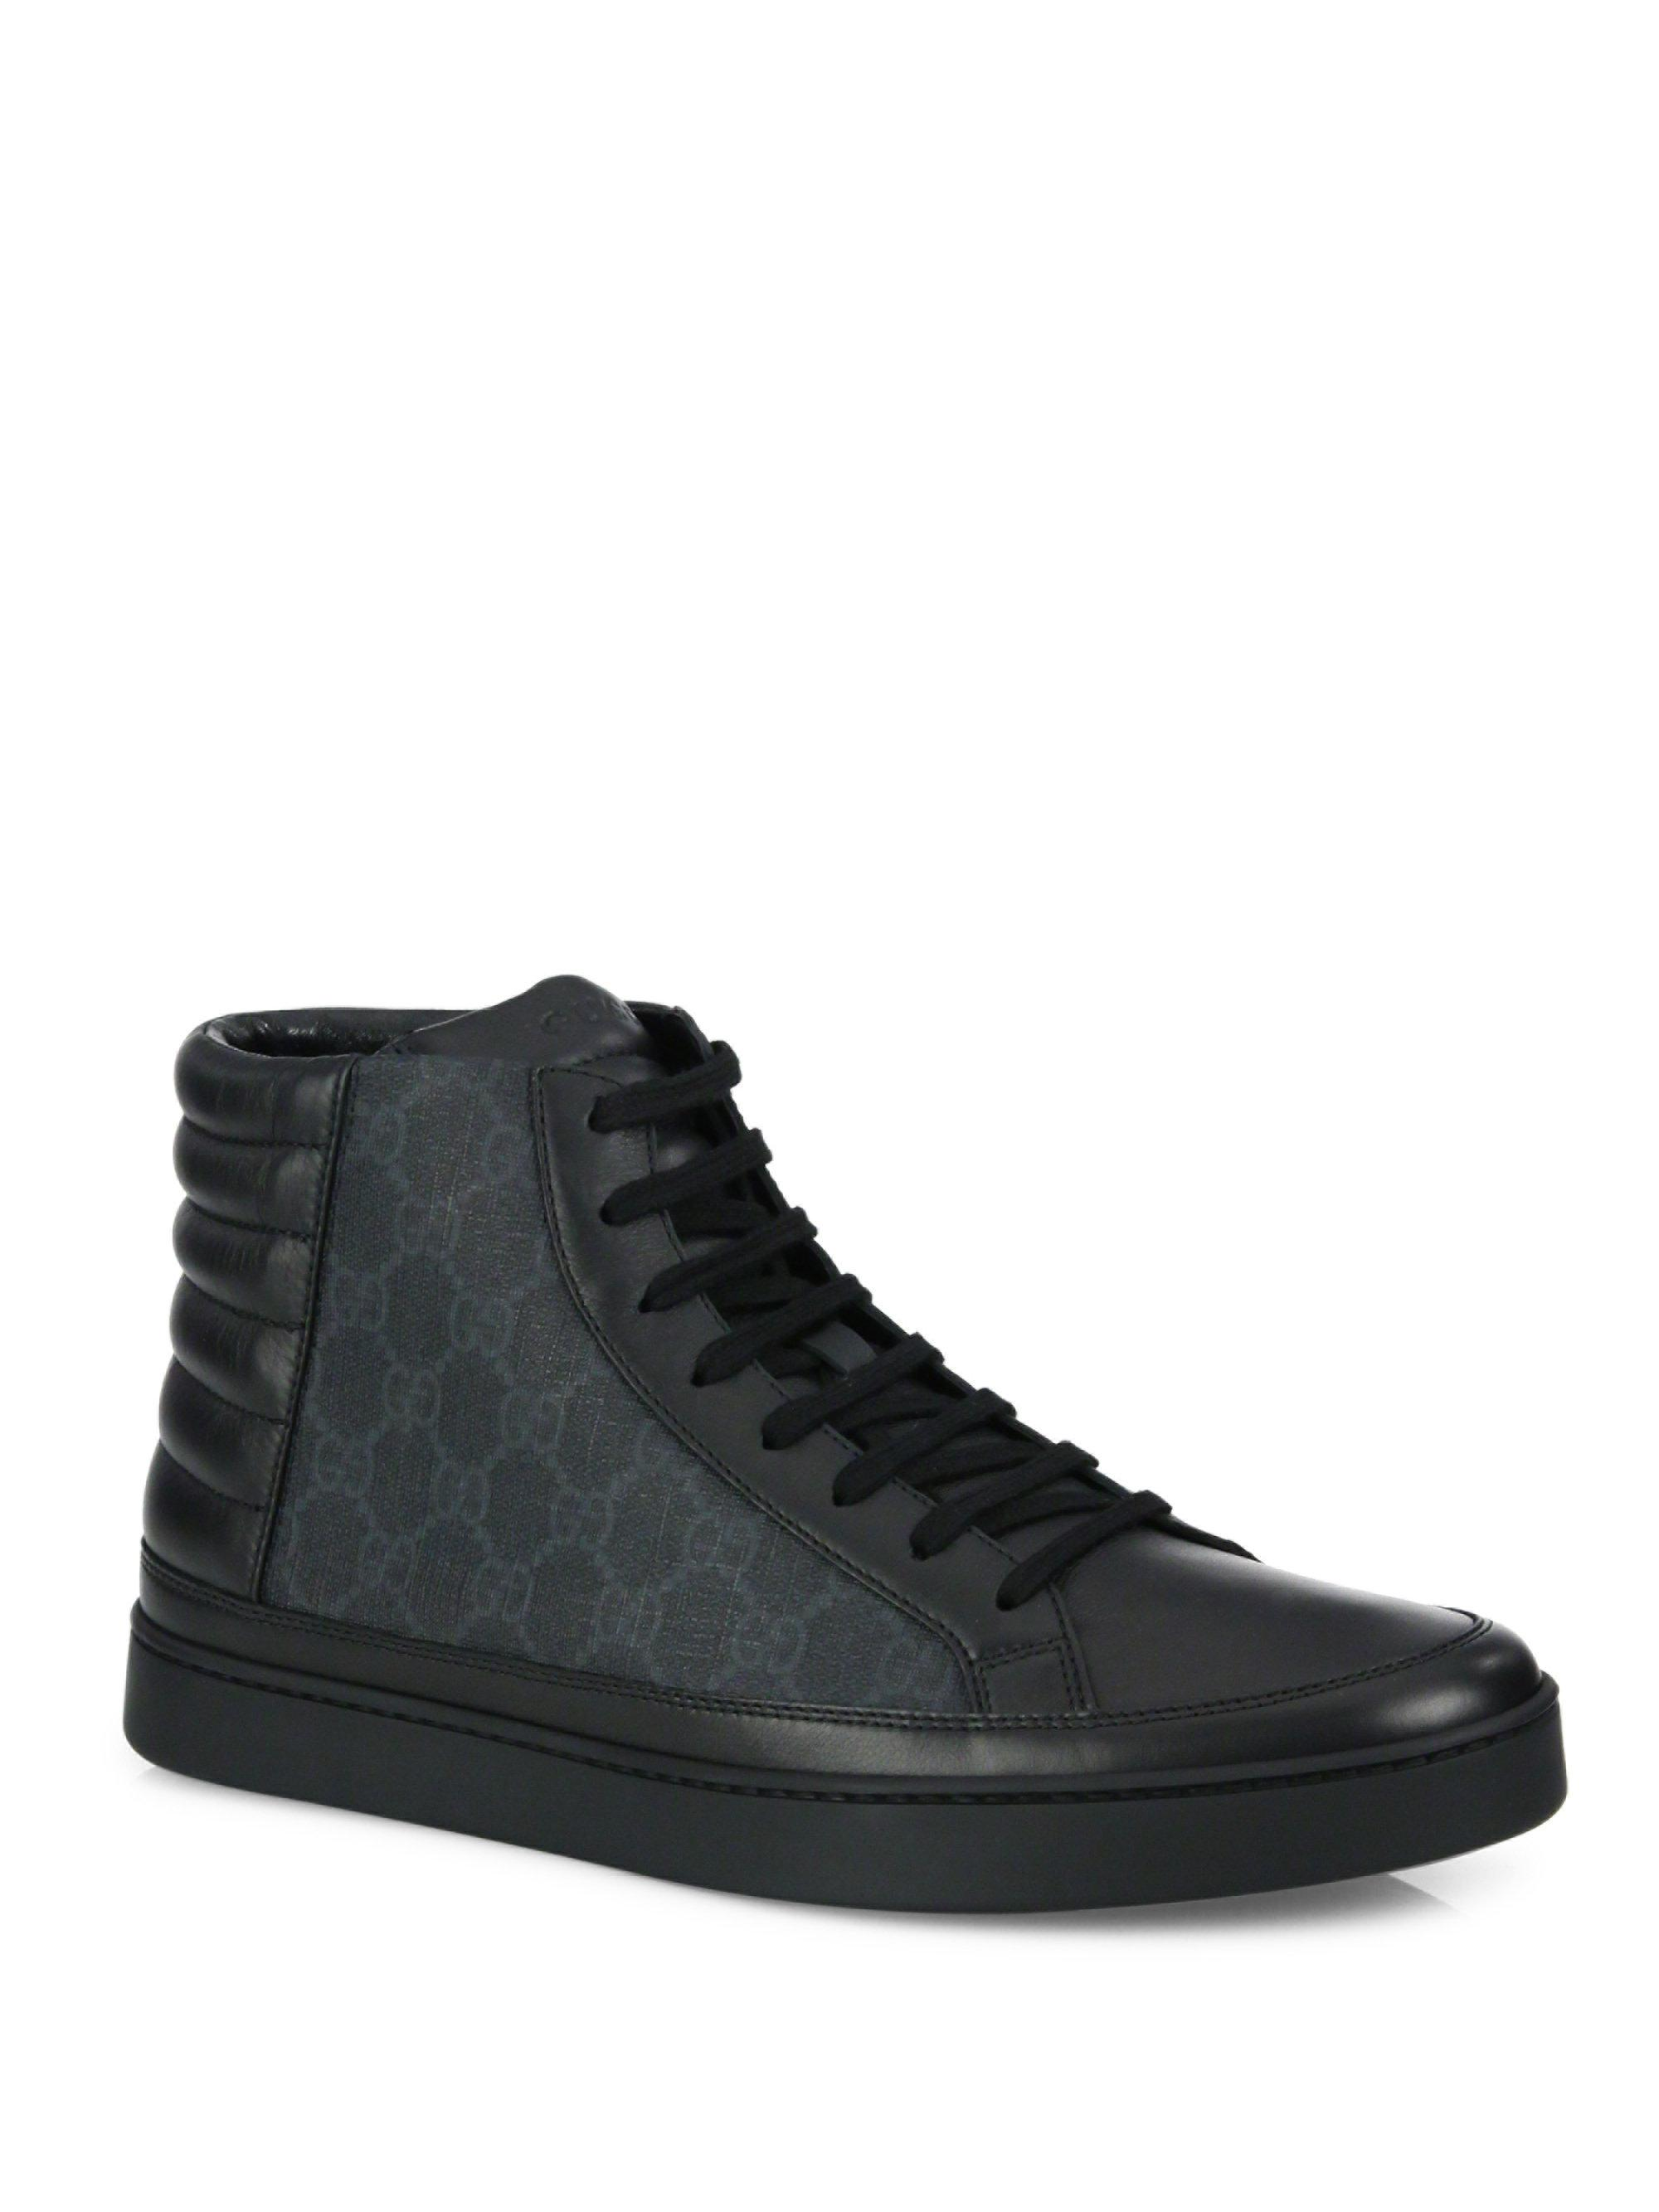 diaXnfa3nDpmMthqUhU5 Leather & Canvas High-Top Sneakers t5IHoc1Sy